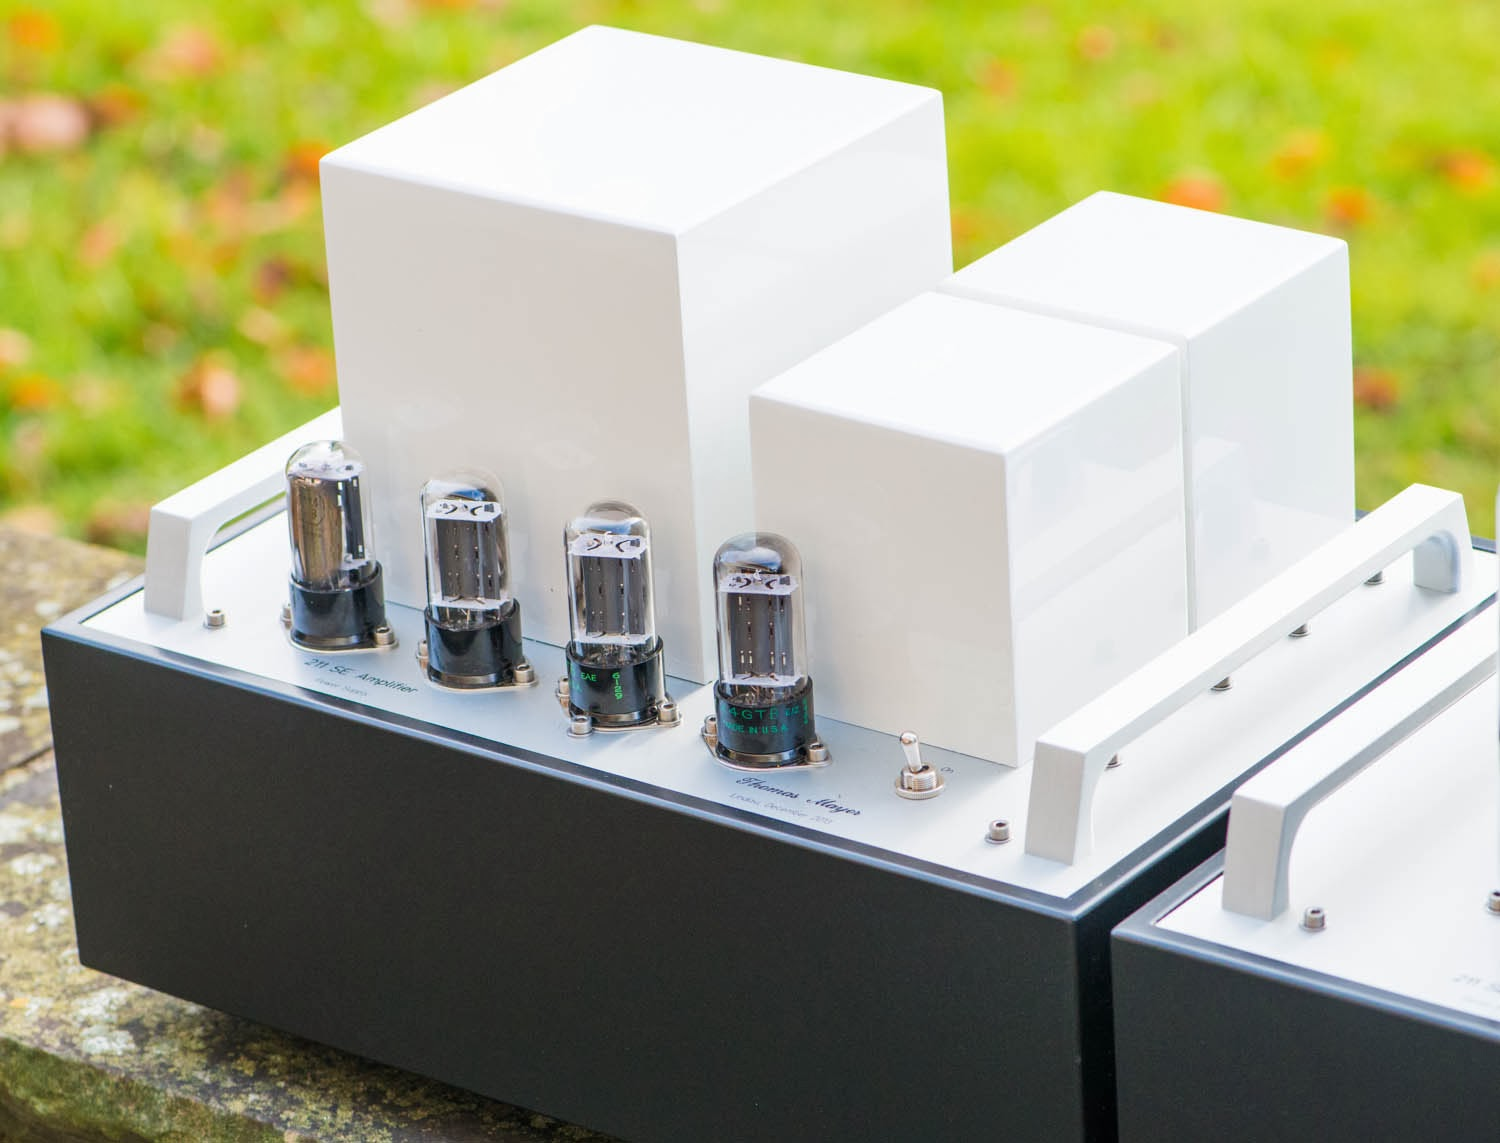 VinylSavor: Making of a 801A / 211 Amplifier, Part 4: Listening